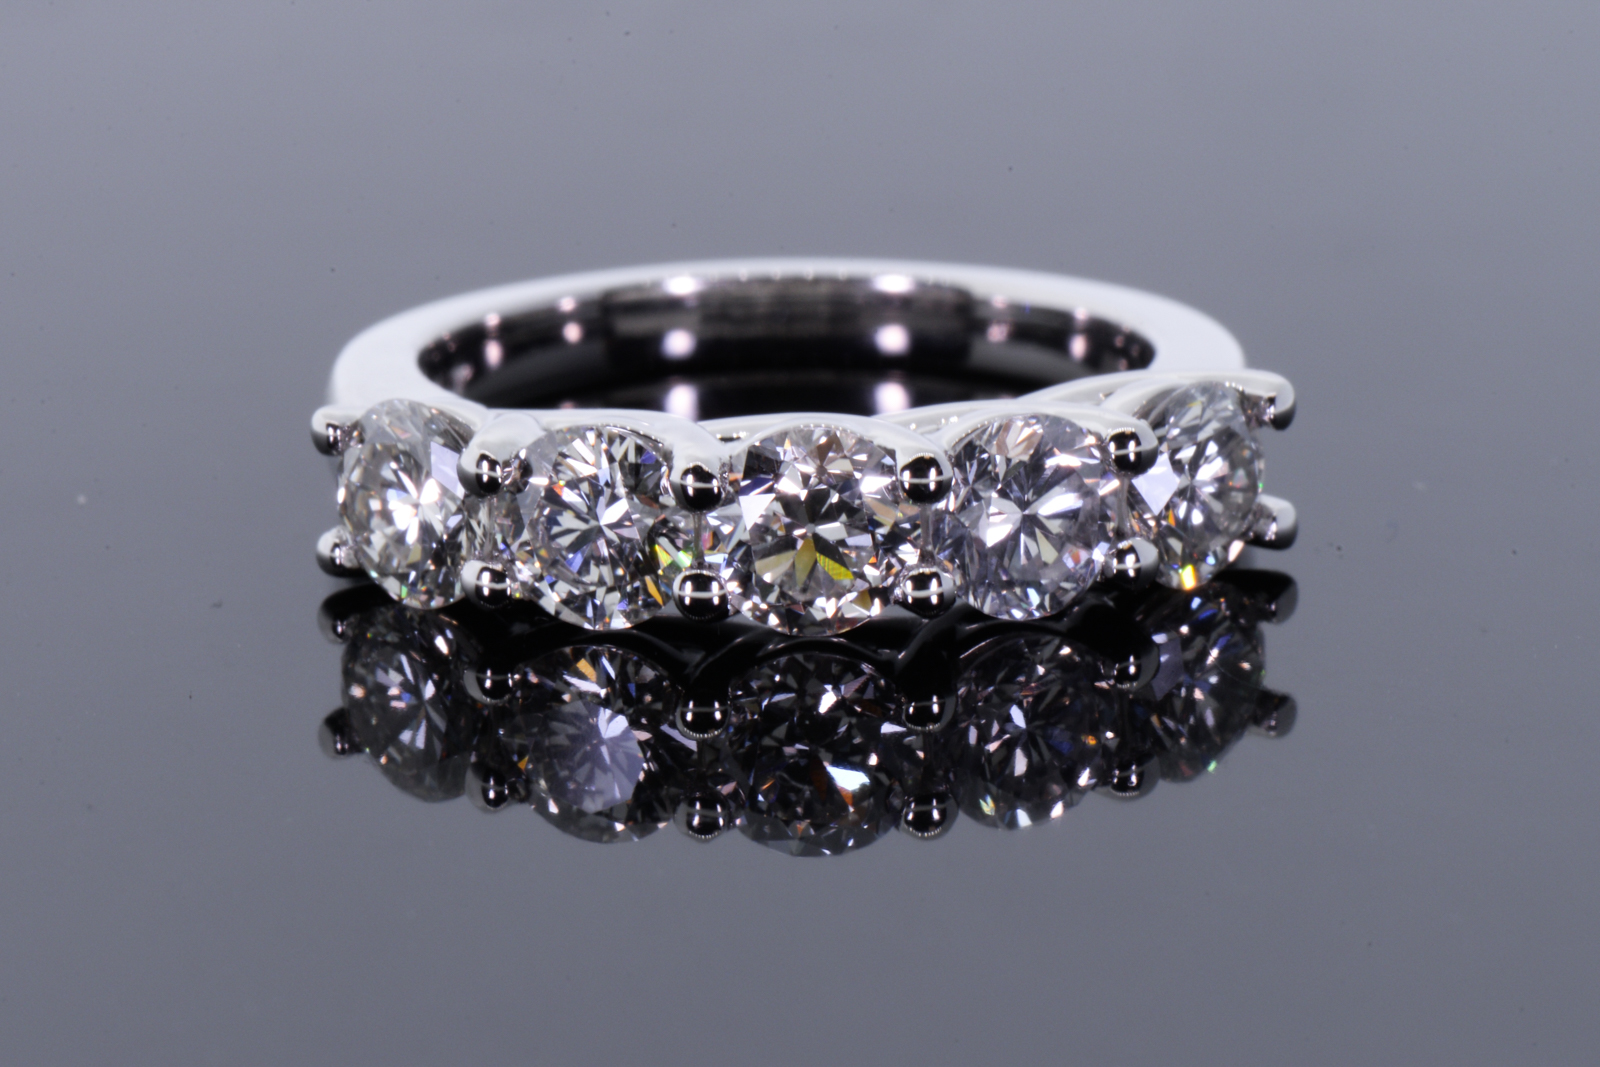 5 wedding band with cross prongs on the side this